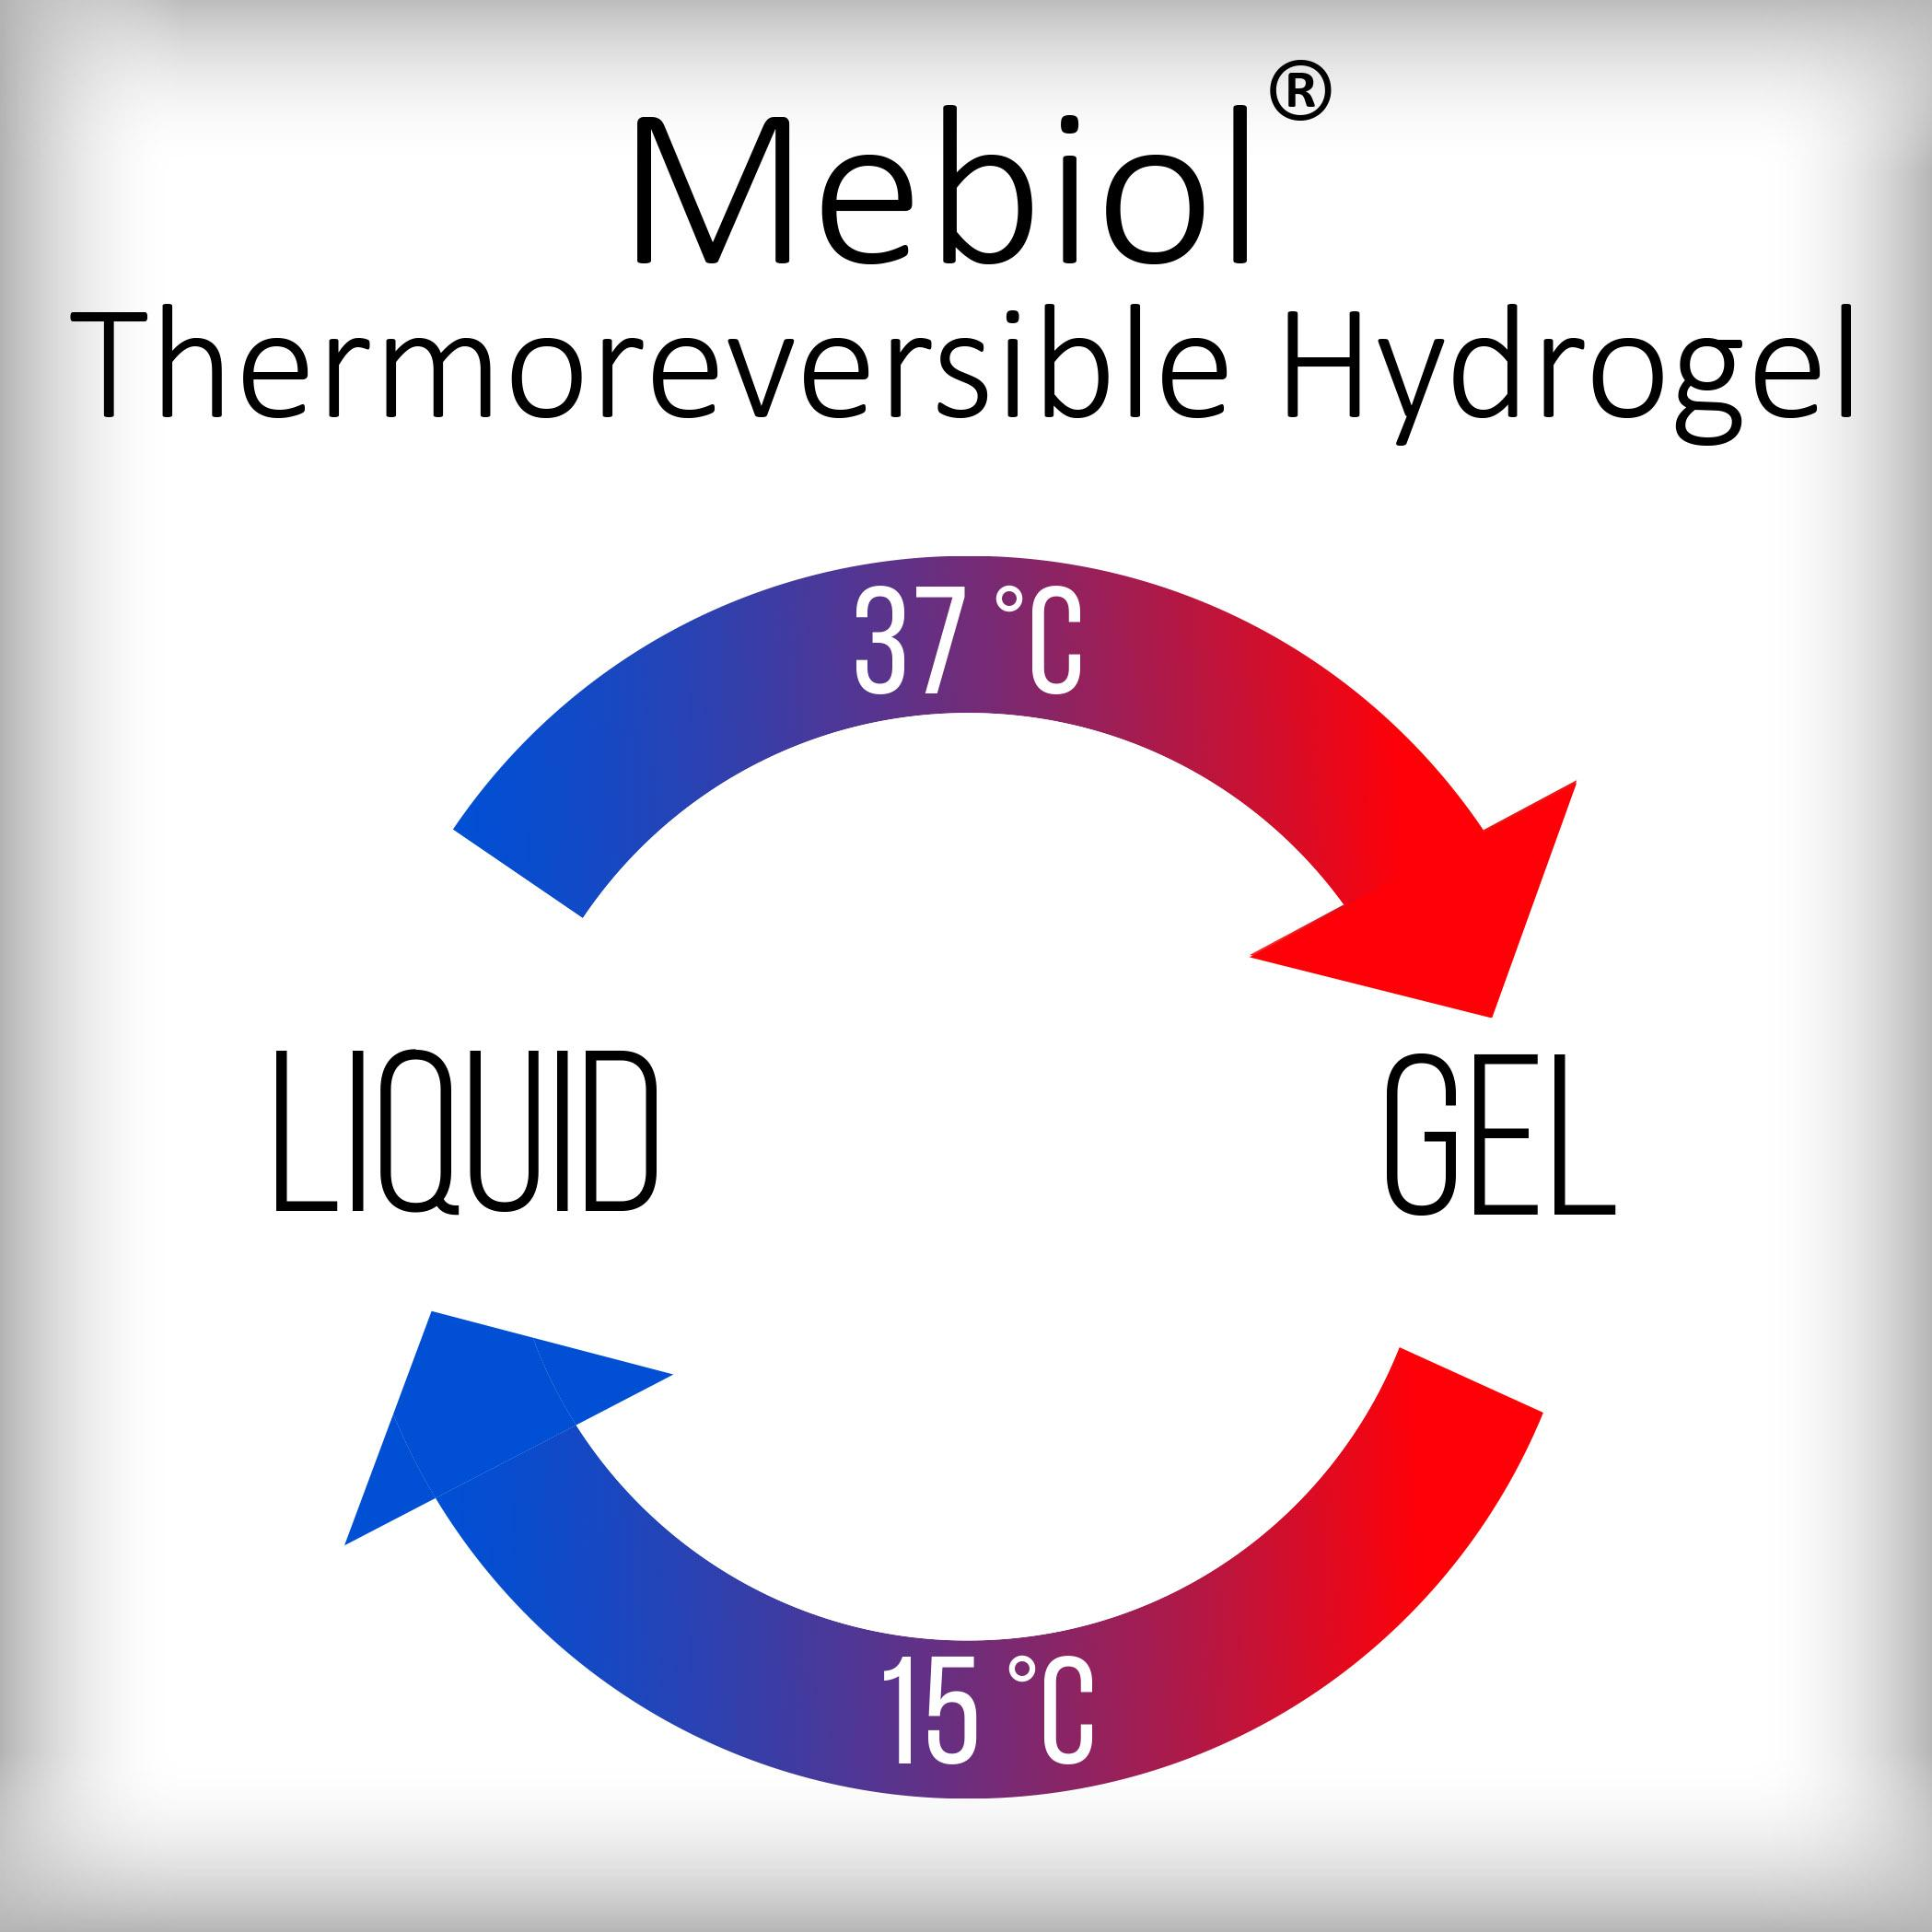 Mebiol thermoreversible hydrogel advanced biomatrix